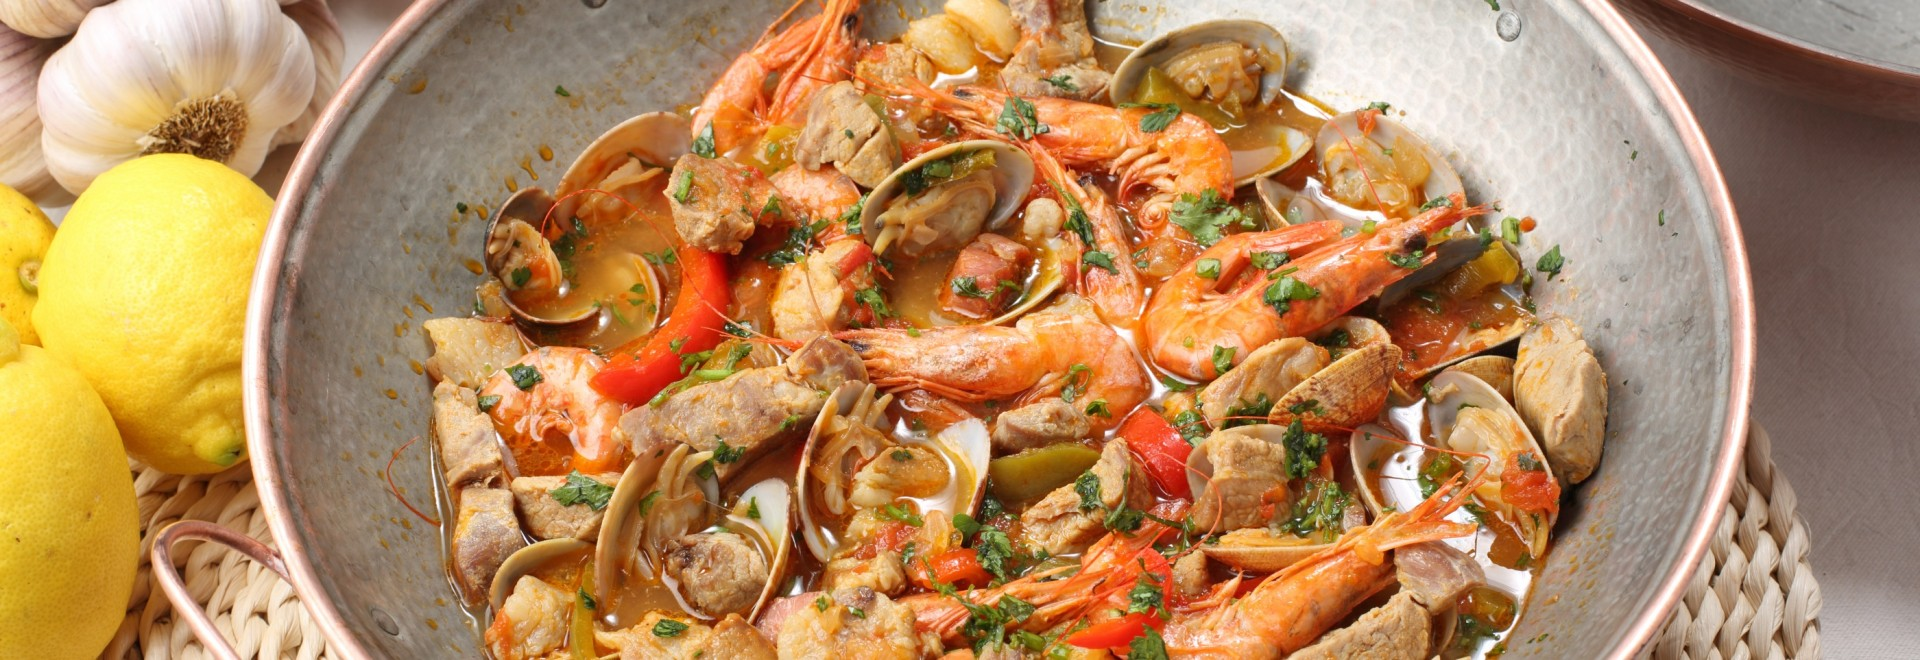 cataplana de marisco do algarve